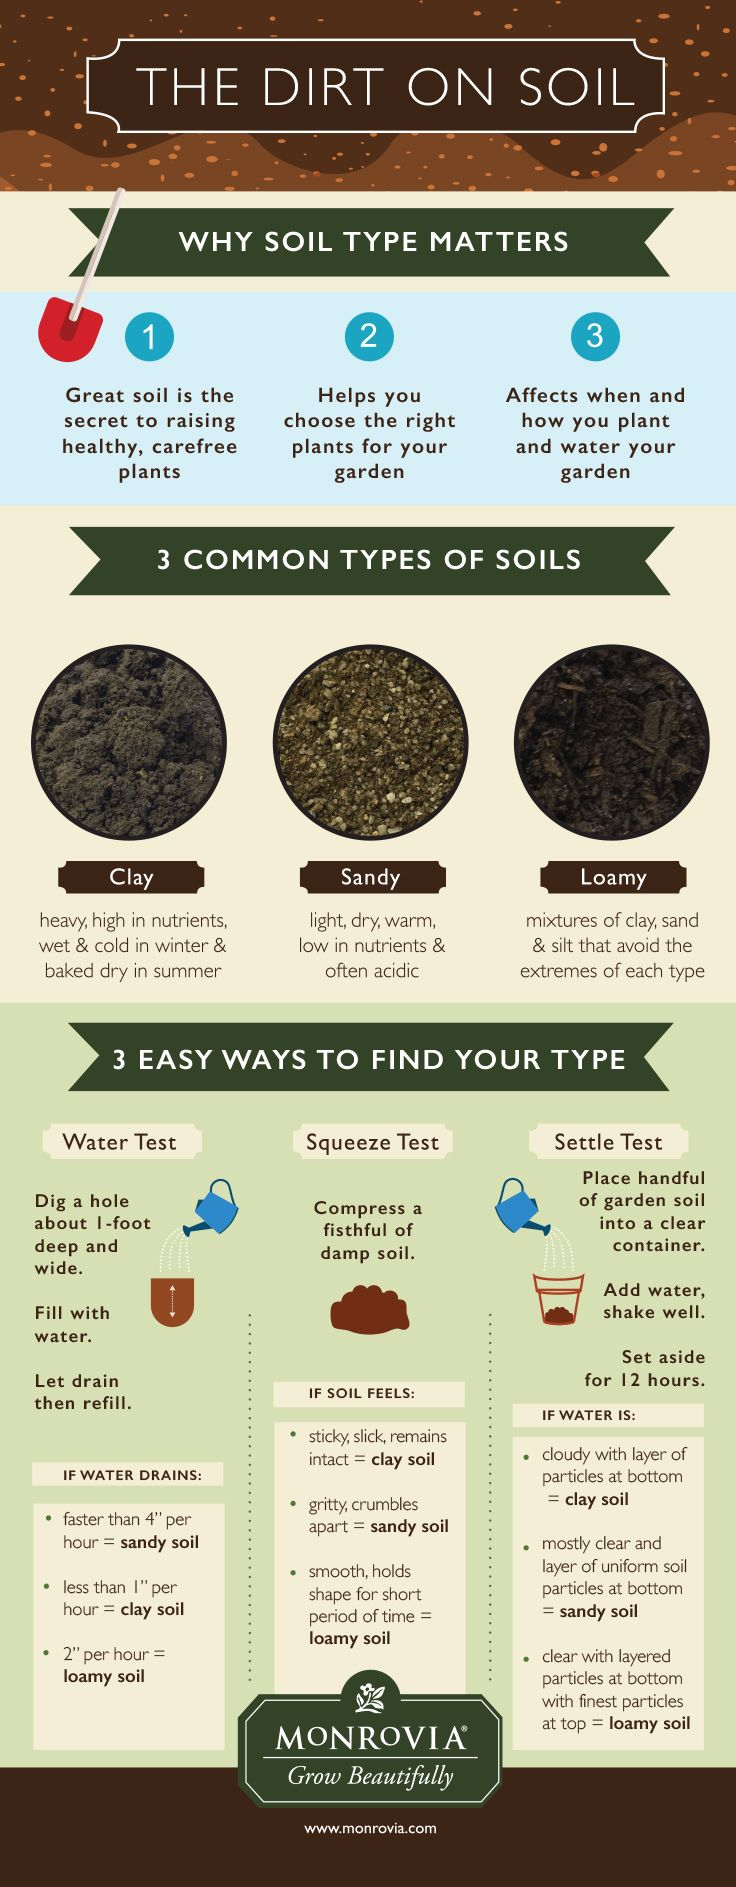 Soil is the key to everything when growing healthy plants — successful rooting, vigorous growth, great harvests, weed, pest, and disease control.